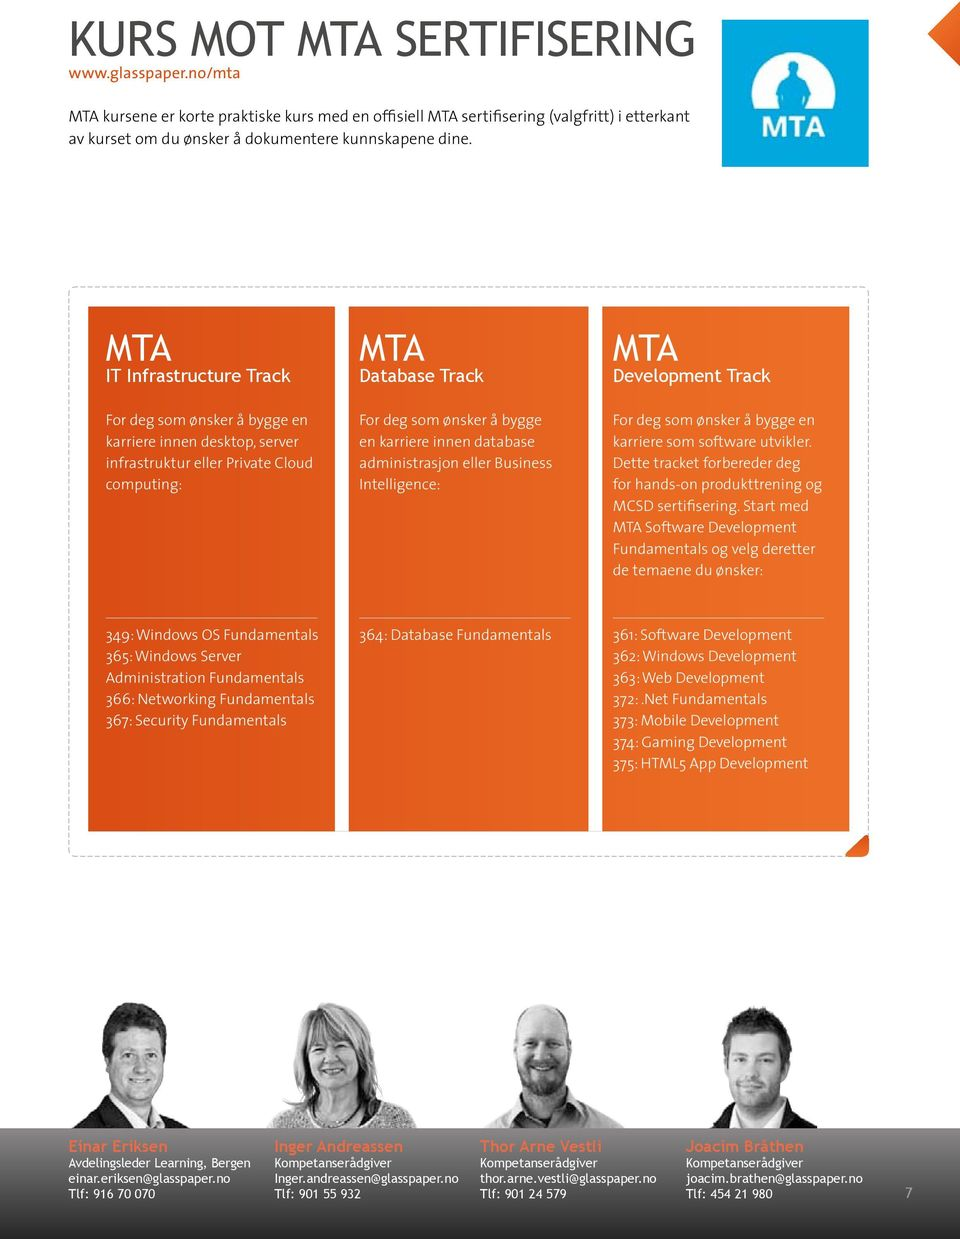 database administrasjon eller Business Intelligence: MTa Development Track For deg som ønsker å bygge en karriere som software utvikler.